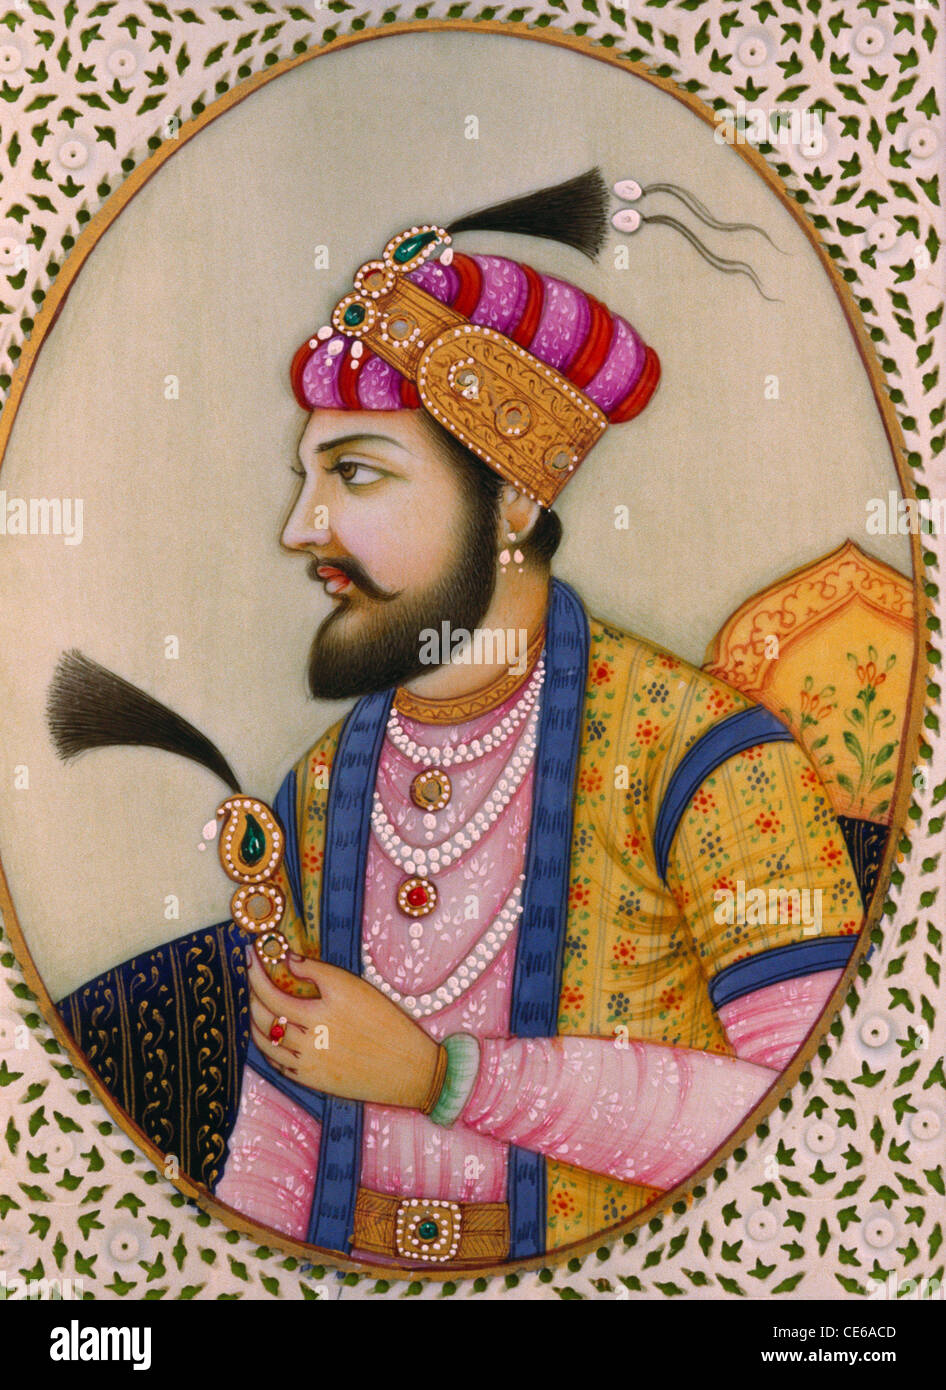 Mughal emperor Shah Jahan miniature painting on ivory Stock Photo